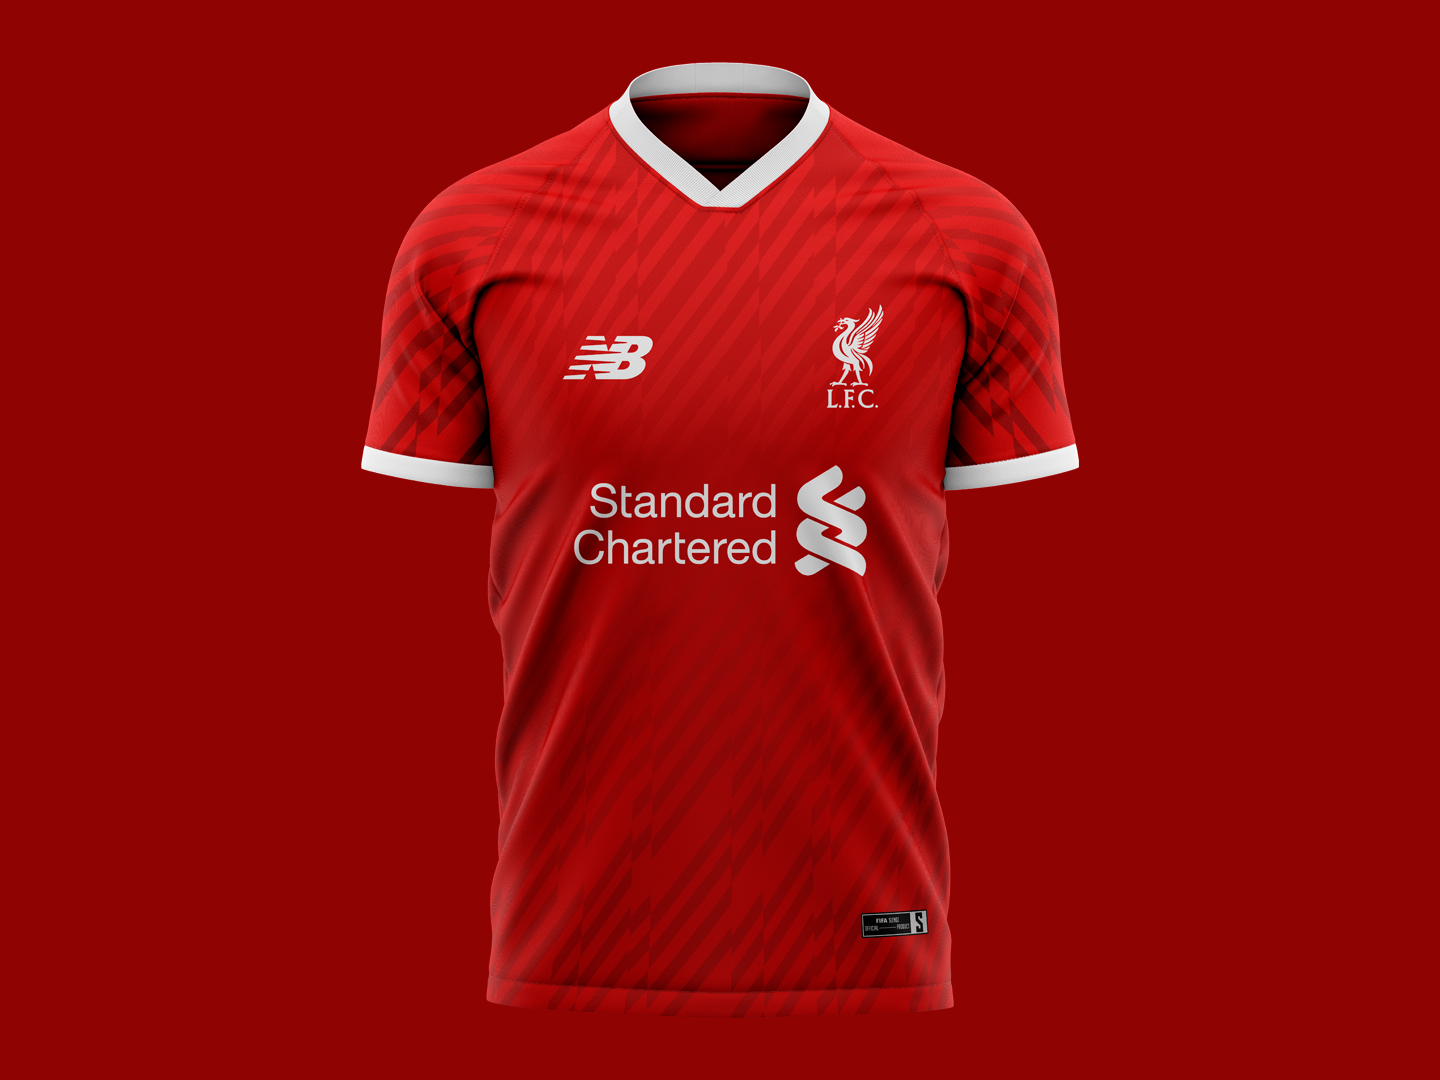 reputable site bb746 123d5 2019 Liverpool Football Club Jersey Concept I by Rafael ...